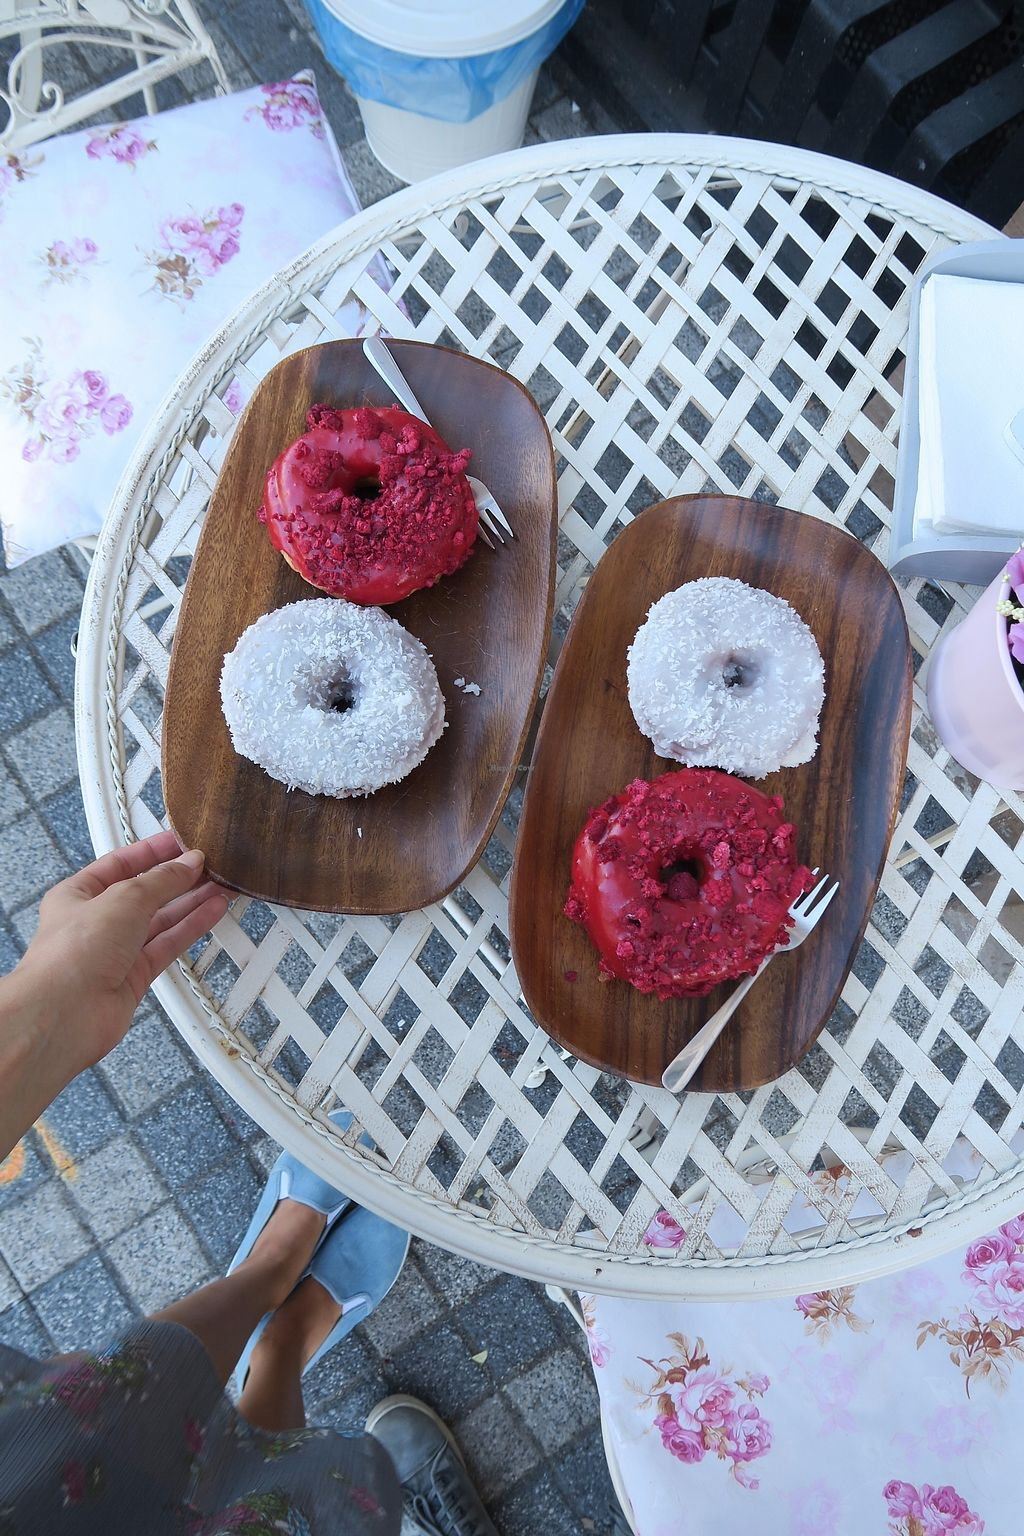 """Photo of La Donuteria  by <a href=""""/members/profile/Nikolate"""">Nikolate</a> <br/>vegan donuts <br/> October 6, 2017  - <a href='/contact/abuse/image/102421/312414'>Report</a>"""